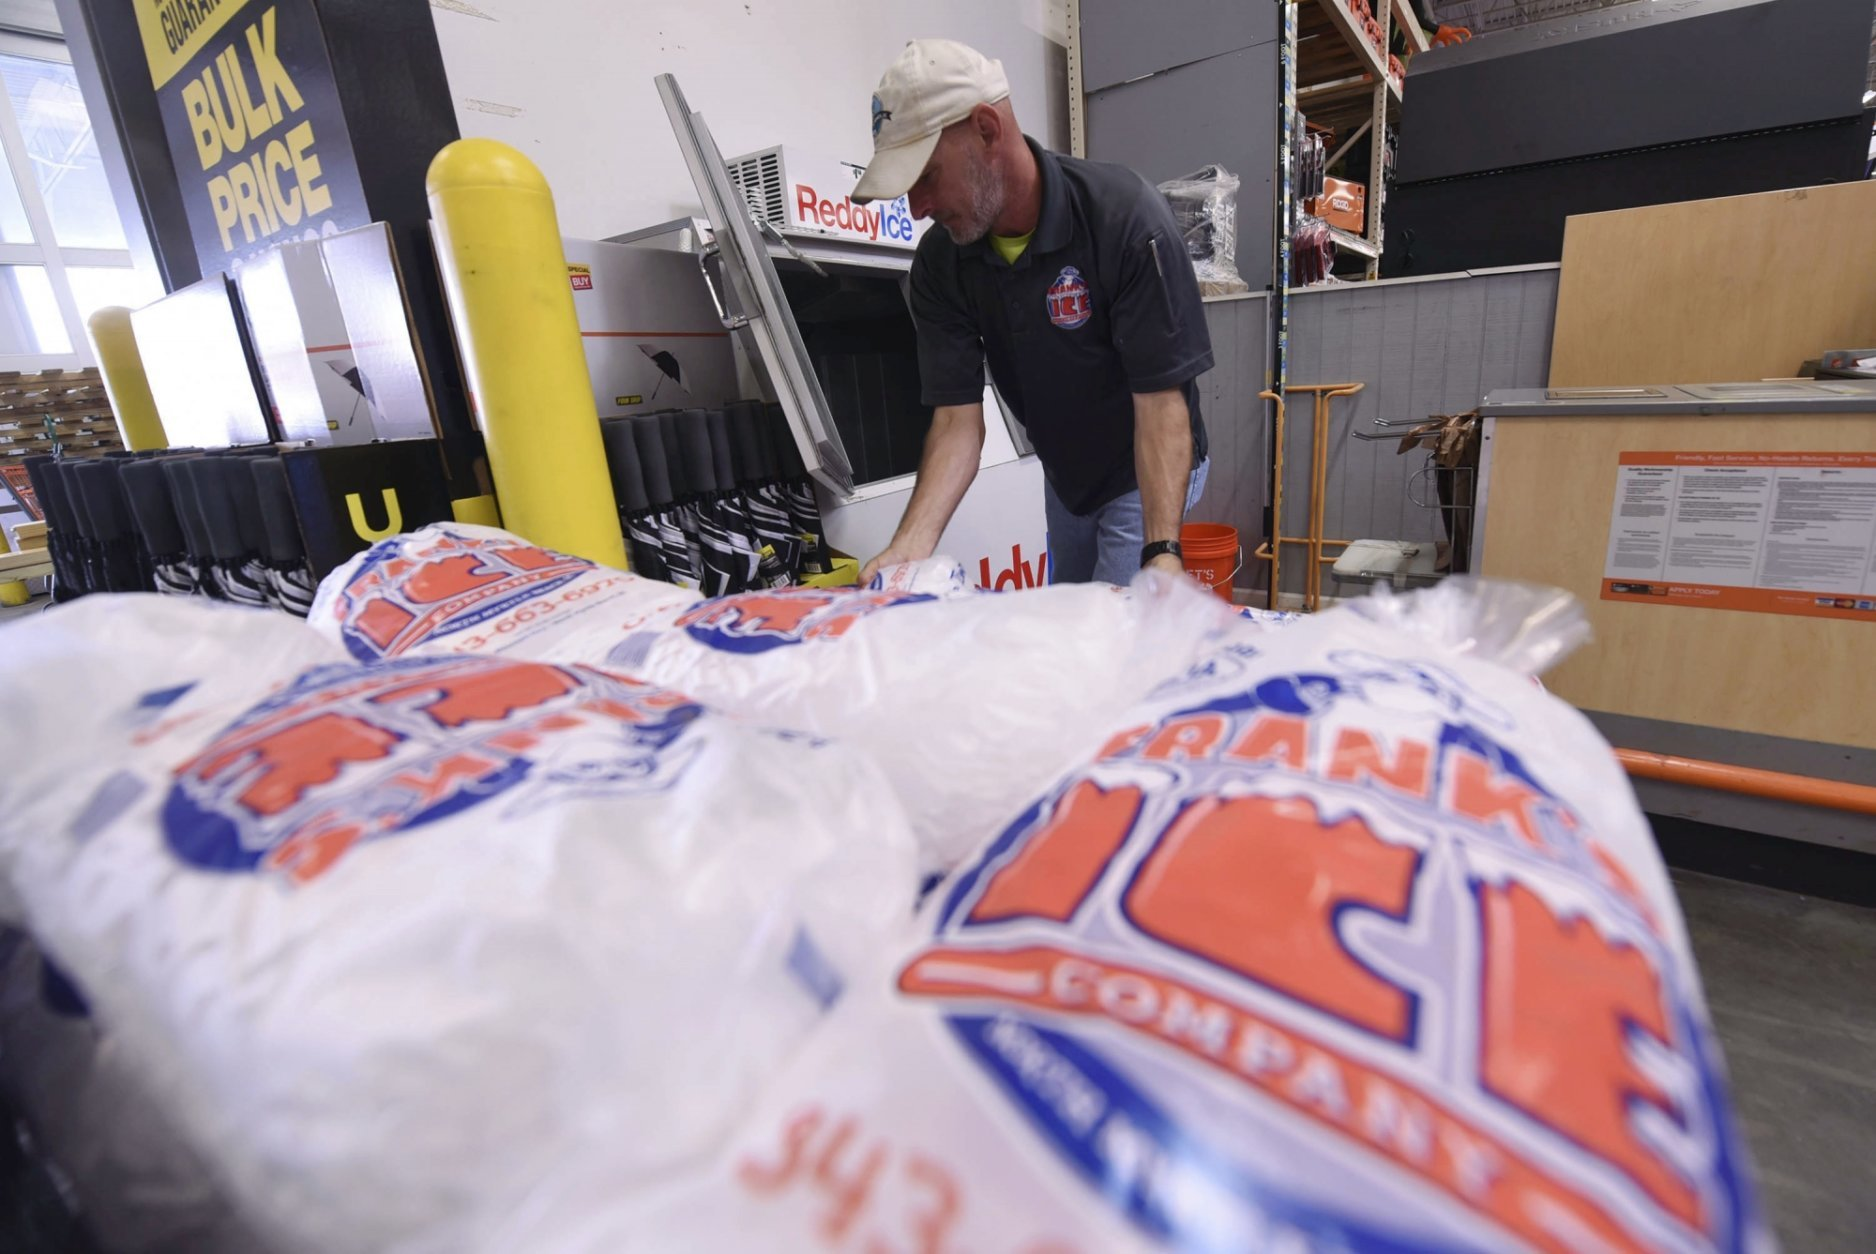 Mike Herring with Frank's Ice Company unloads another pallet of ice as people buy supplies at The Home Depot on Monday, Sept. 10, 2018, in Wilmington, N.C. Hurricane Florence rapidly strengthened into a potentially catastrophic hurricane on Monday as it closed in on North and South Carolina, carrying winds and water that could wreak havoc over a wide stretch of the eastern United States later this week. (Ken Blevins/The Star-News via AP)